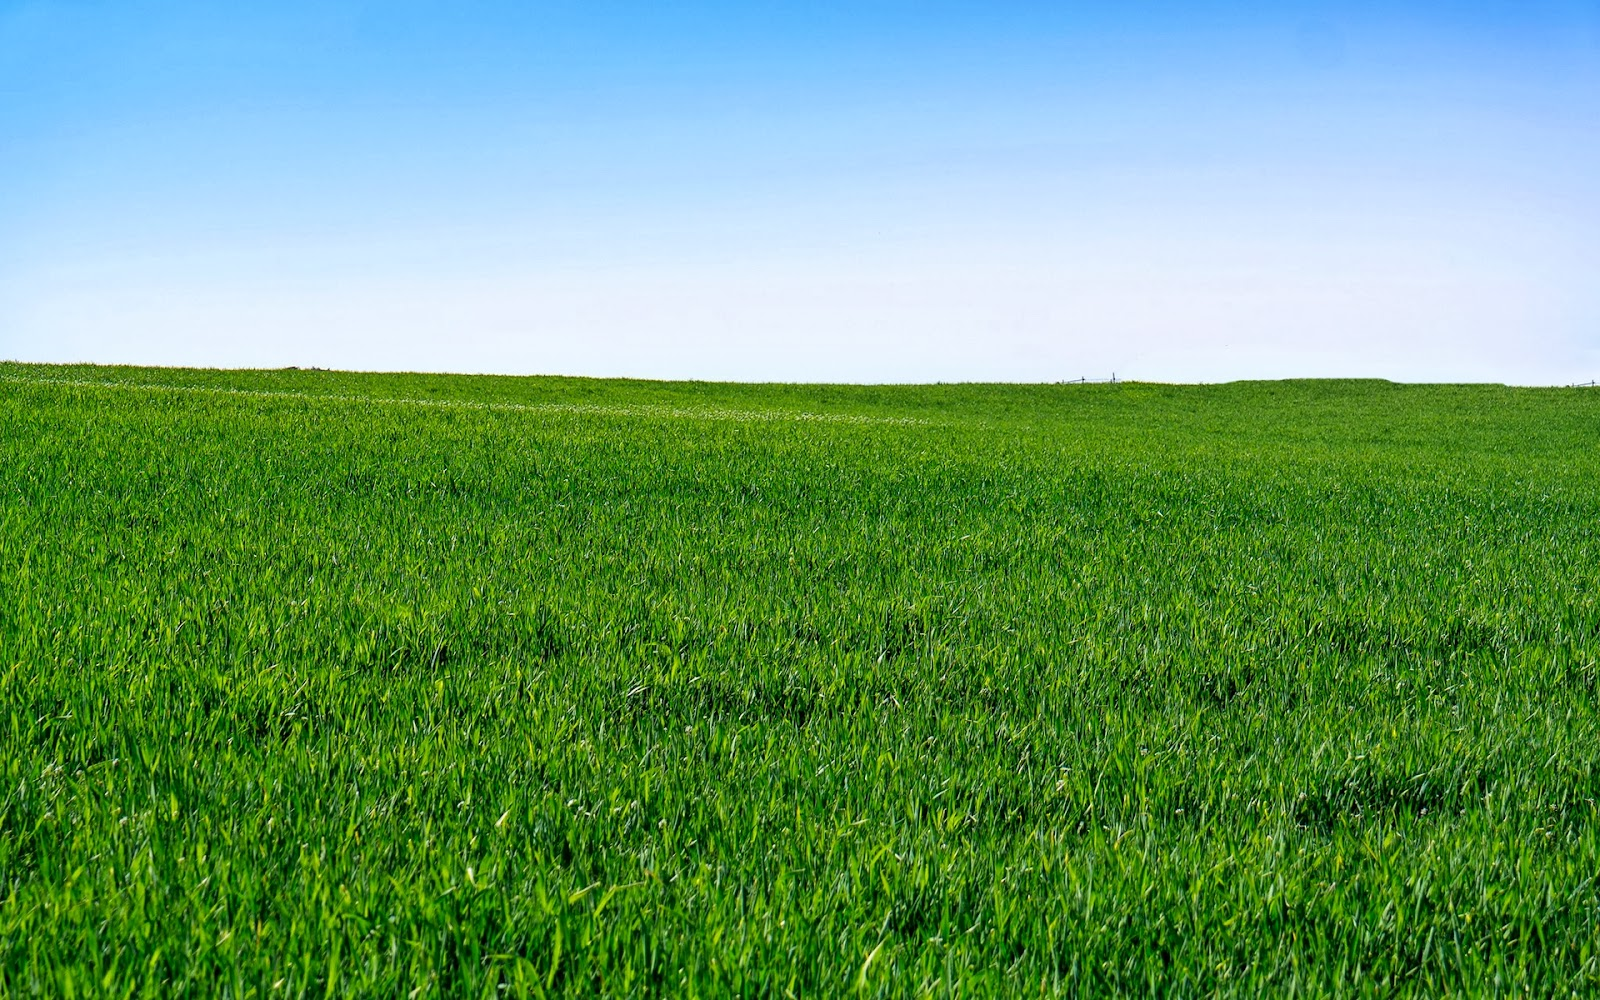 Lush Green Grass Nature Full HD Desktop Backgrounds Images Wallpapers Free